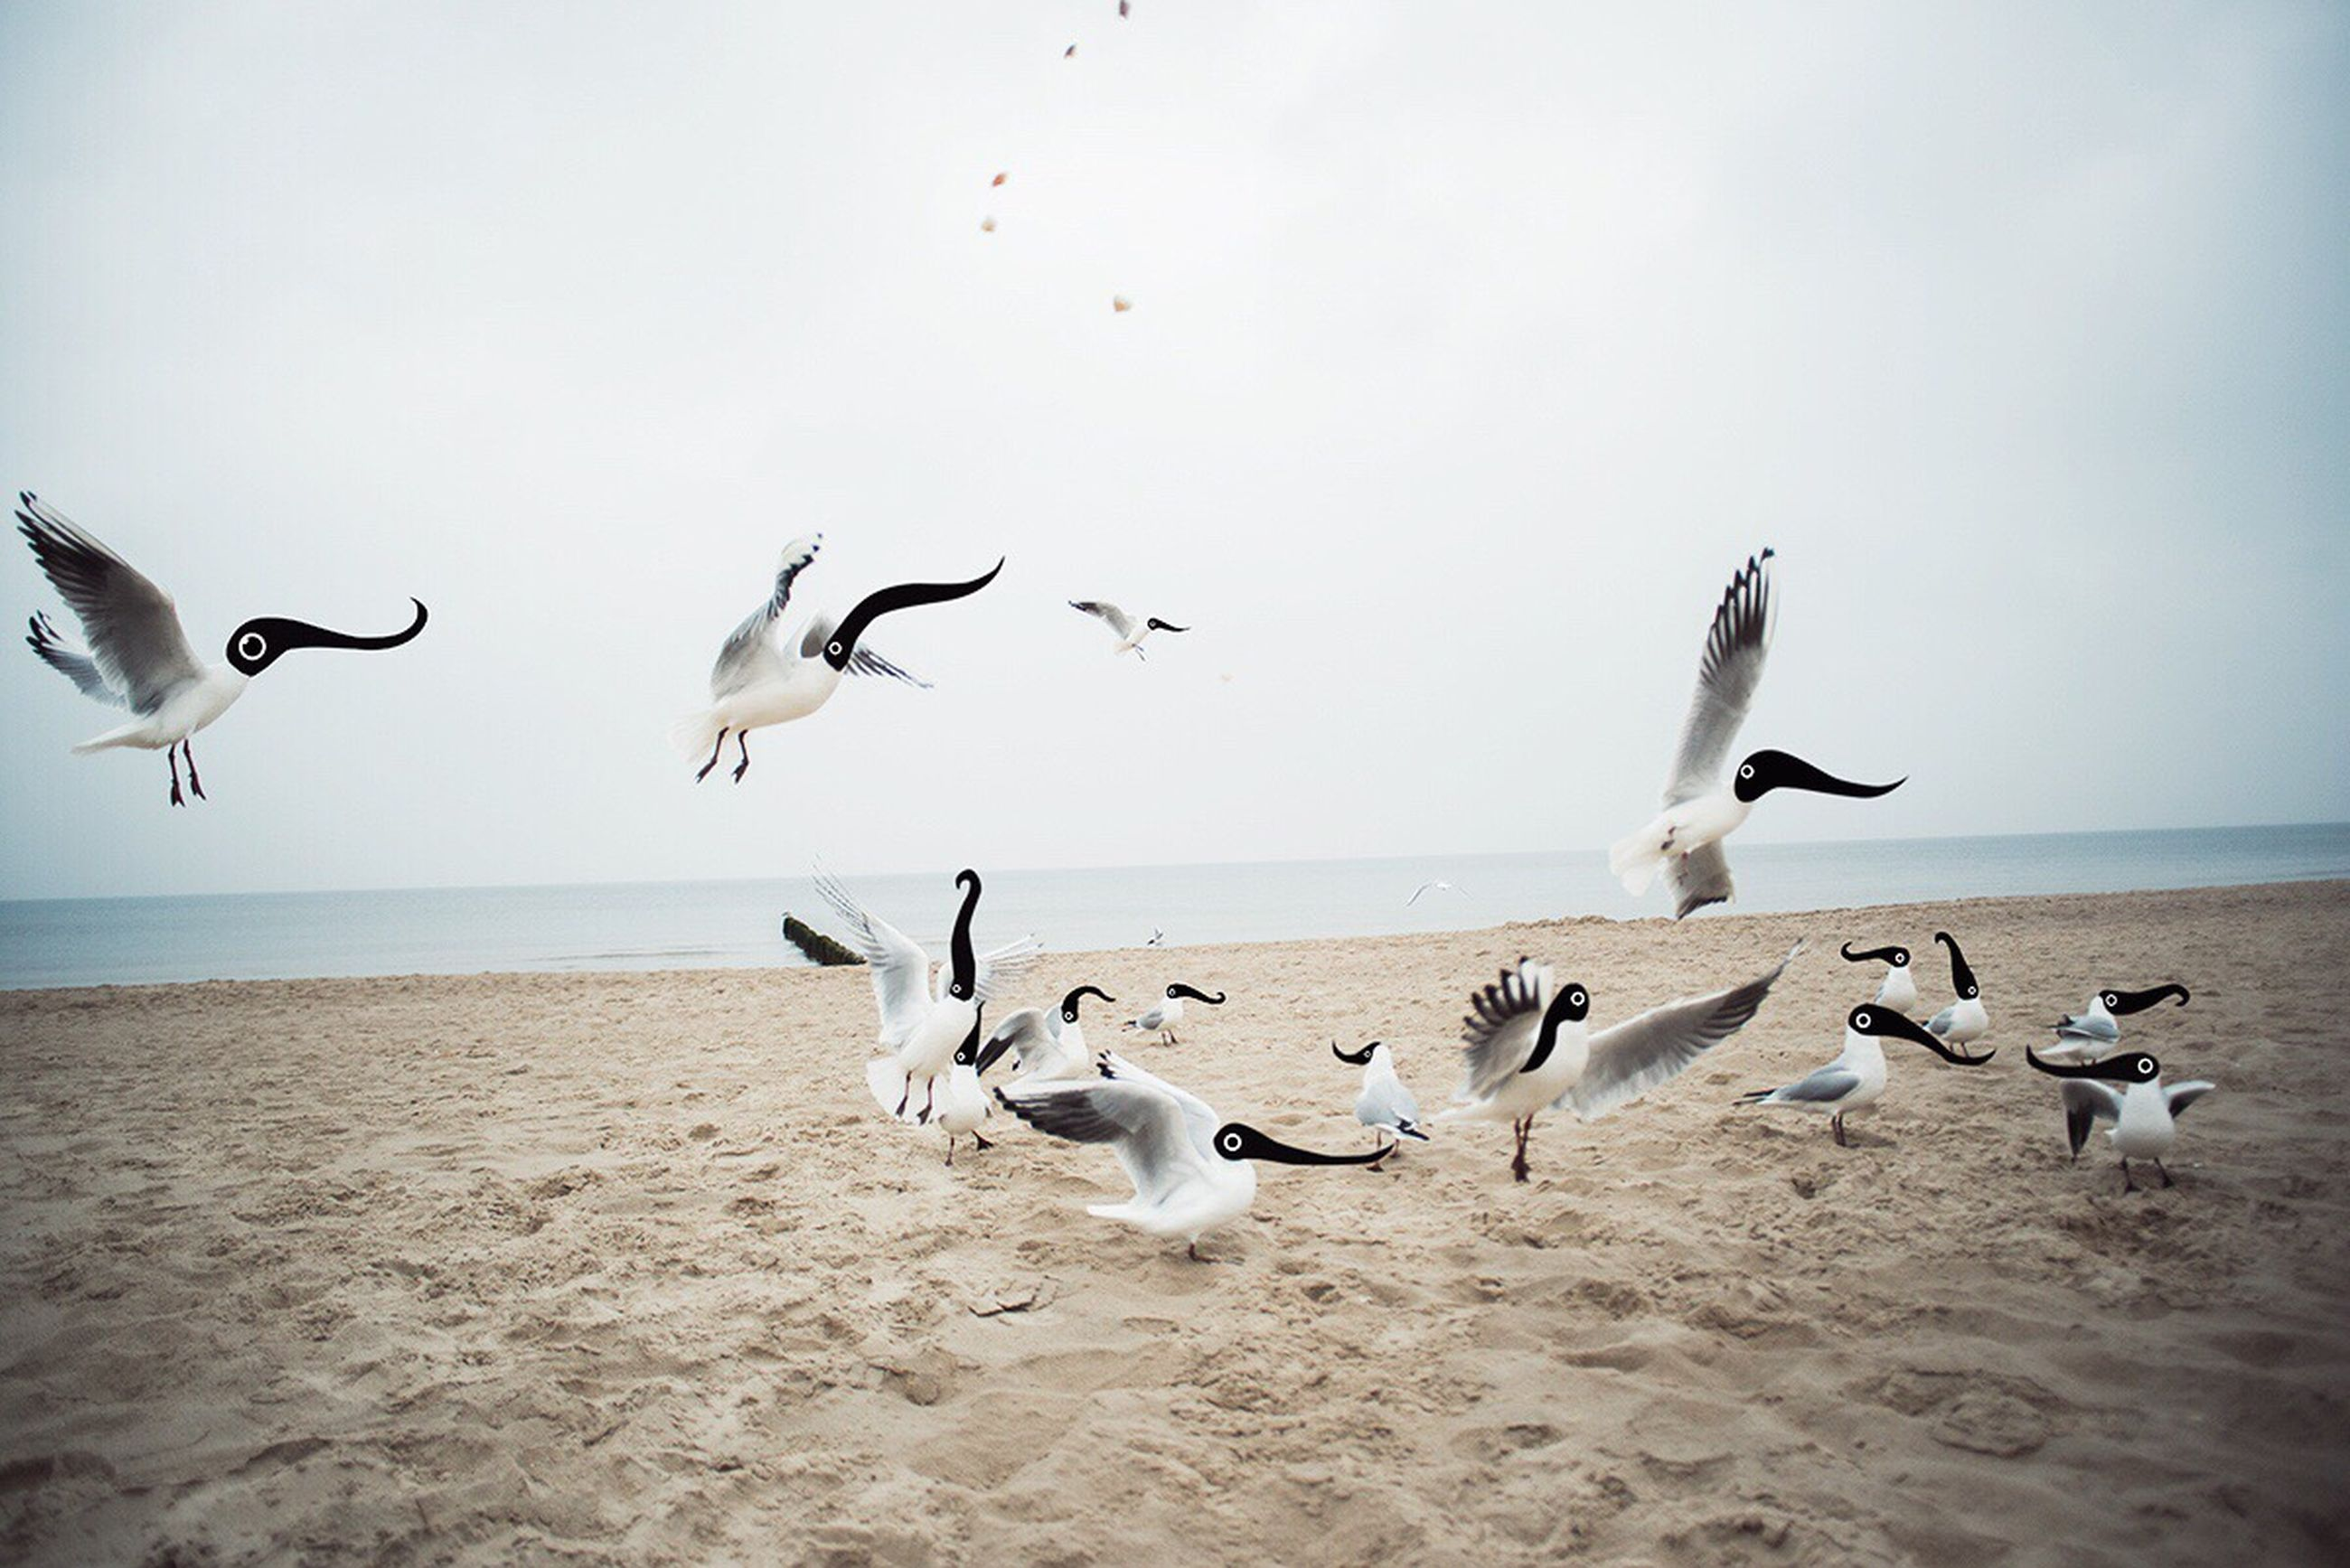 bird, beach, animal themes, sea, animals in the wild, flying, seagull, wildlife, sand, flock of birds, shore, horizon over water, water, sky, nature, spread wings, medium group of animals, beauty in nature, tranquil scene